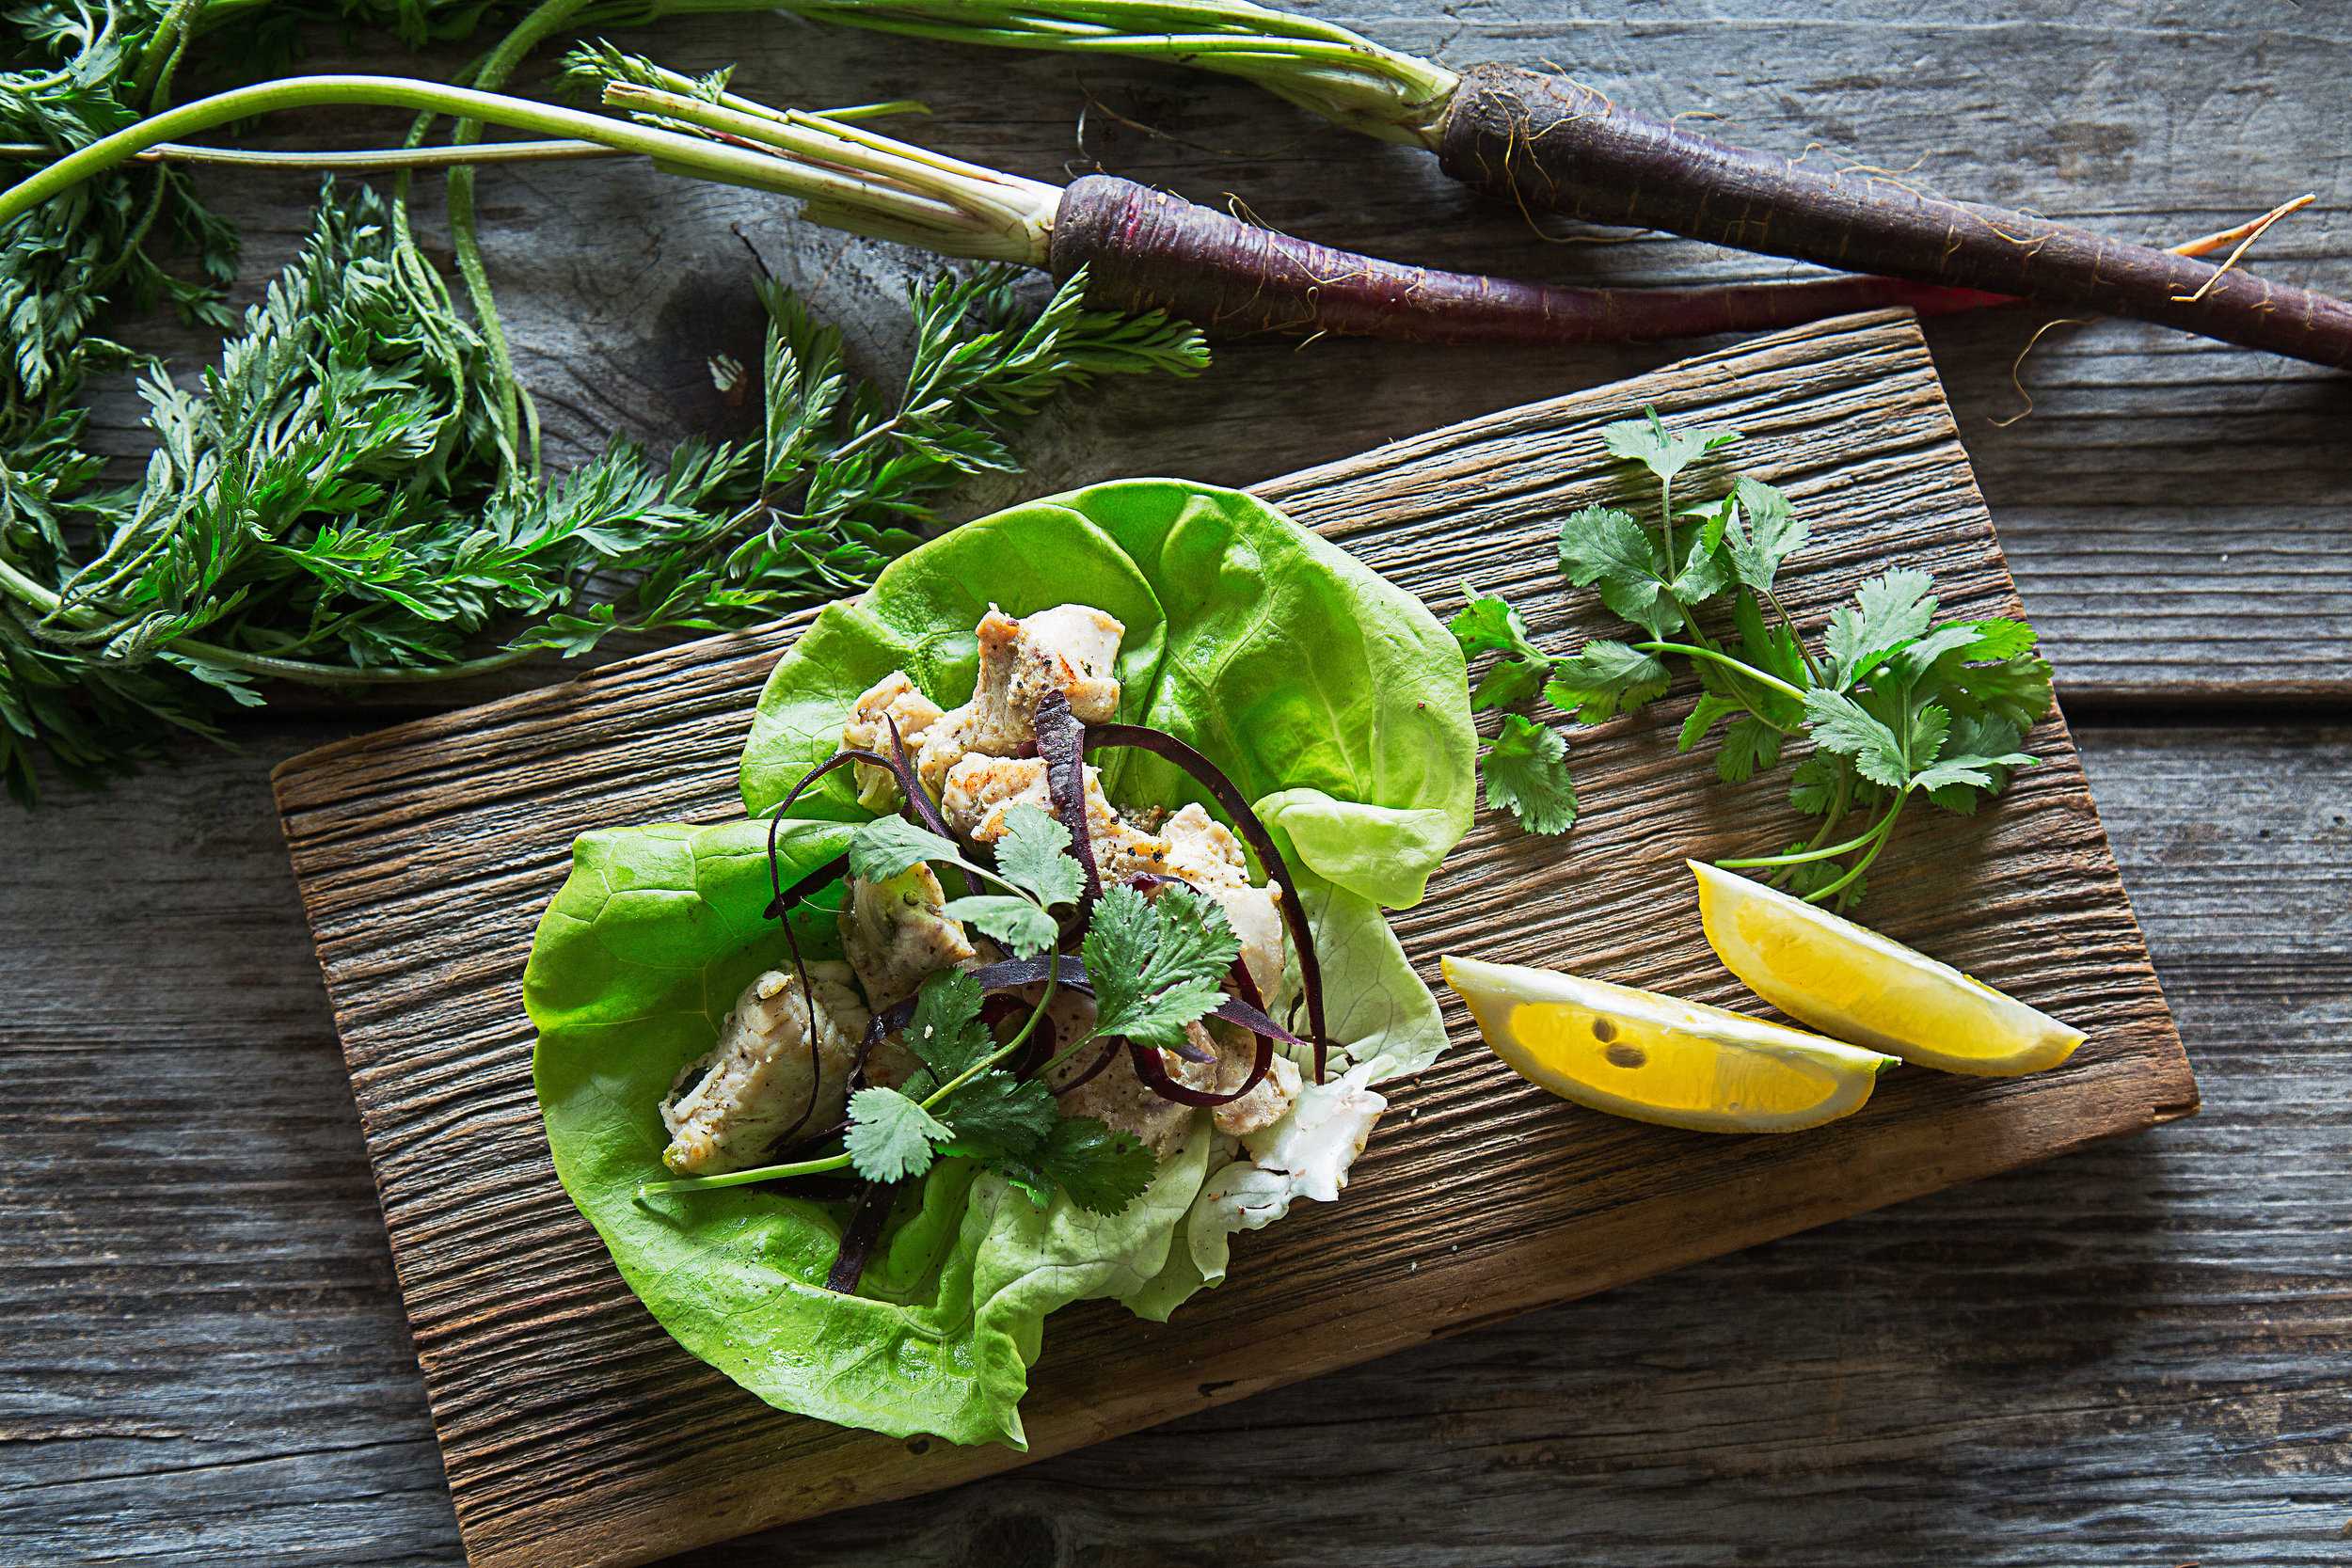 Easy to make lettuce wraps. From our kitchen to yours!